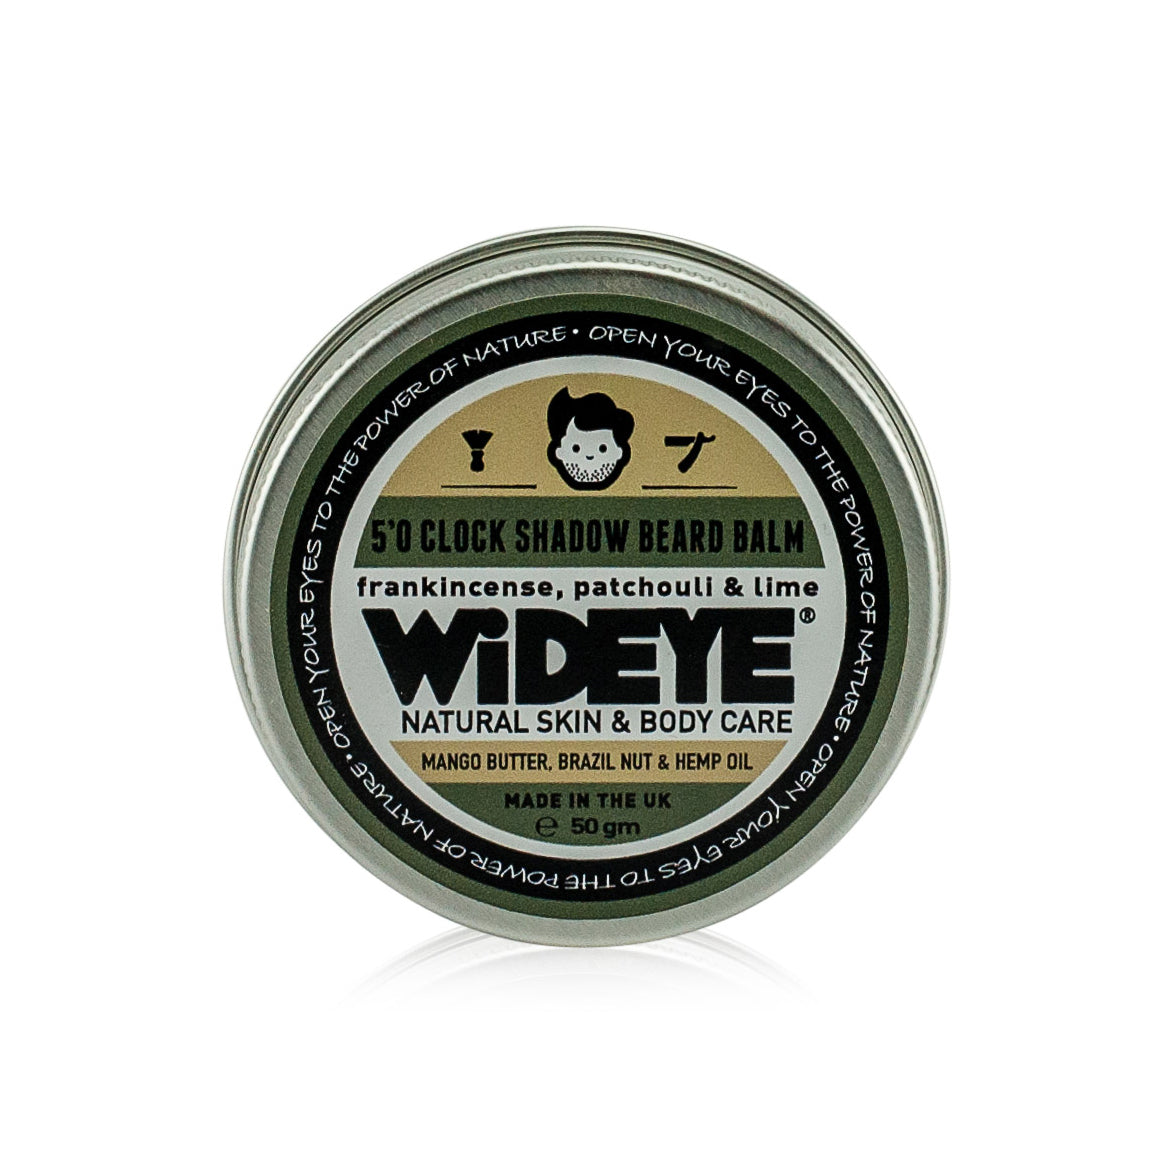 Natural vegetarian skincare 'Five O Clock Shadow' beard balm in aluminium tin handmade by WiDEYE in Rye.